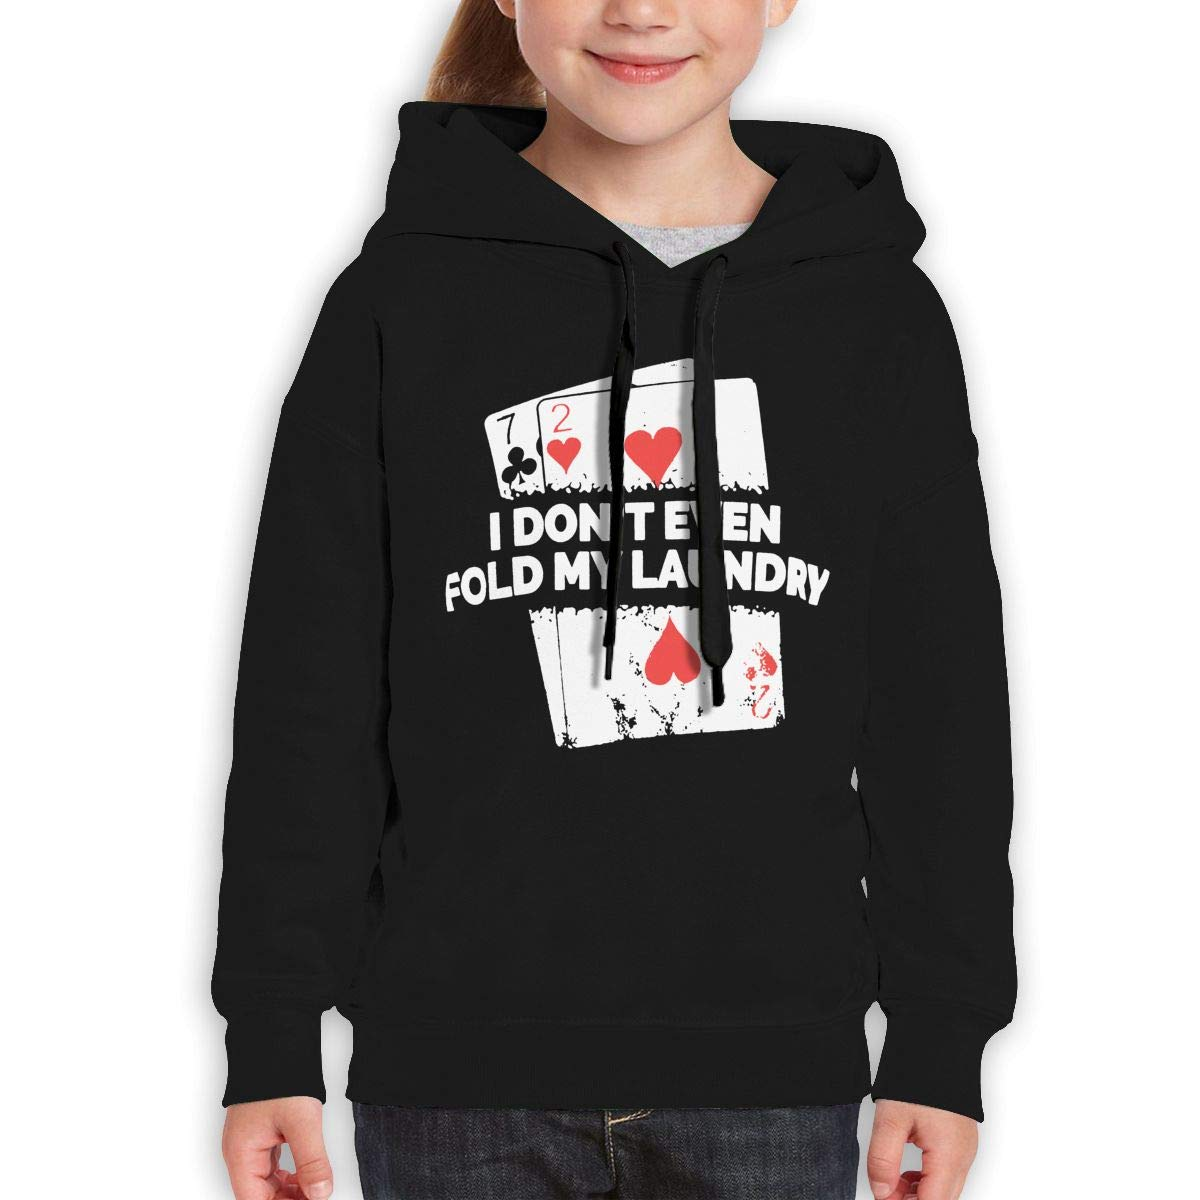 Boys Girls I Dont Even Fold My Laundry Teen Youth Hoodie Black